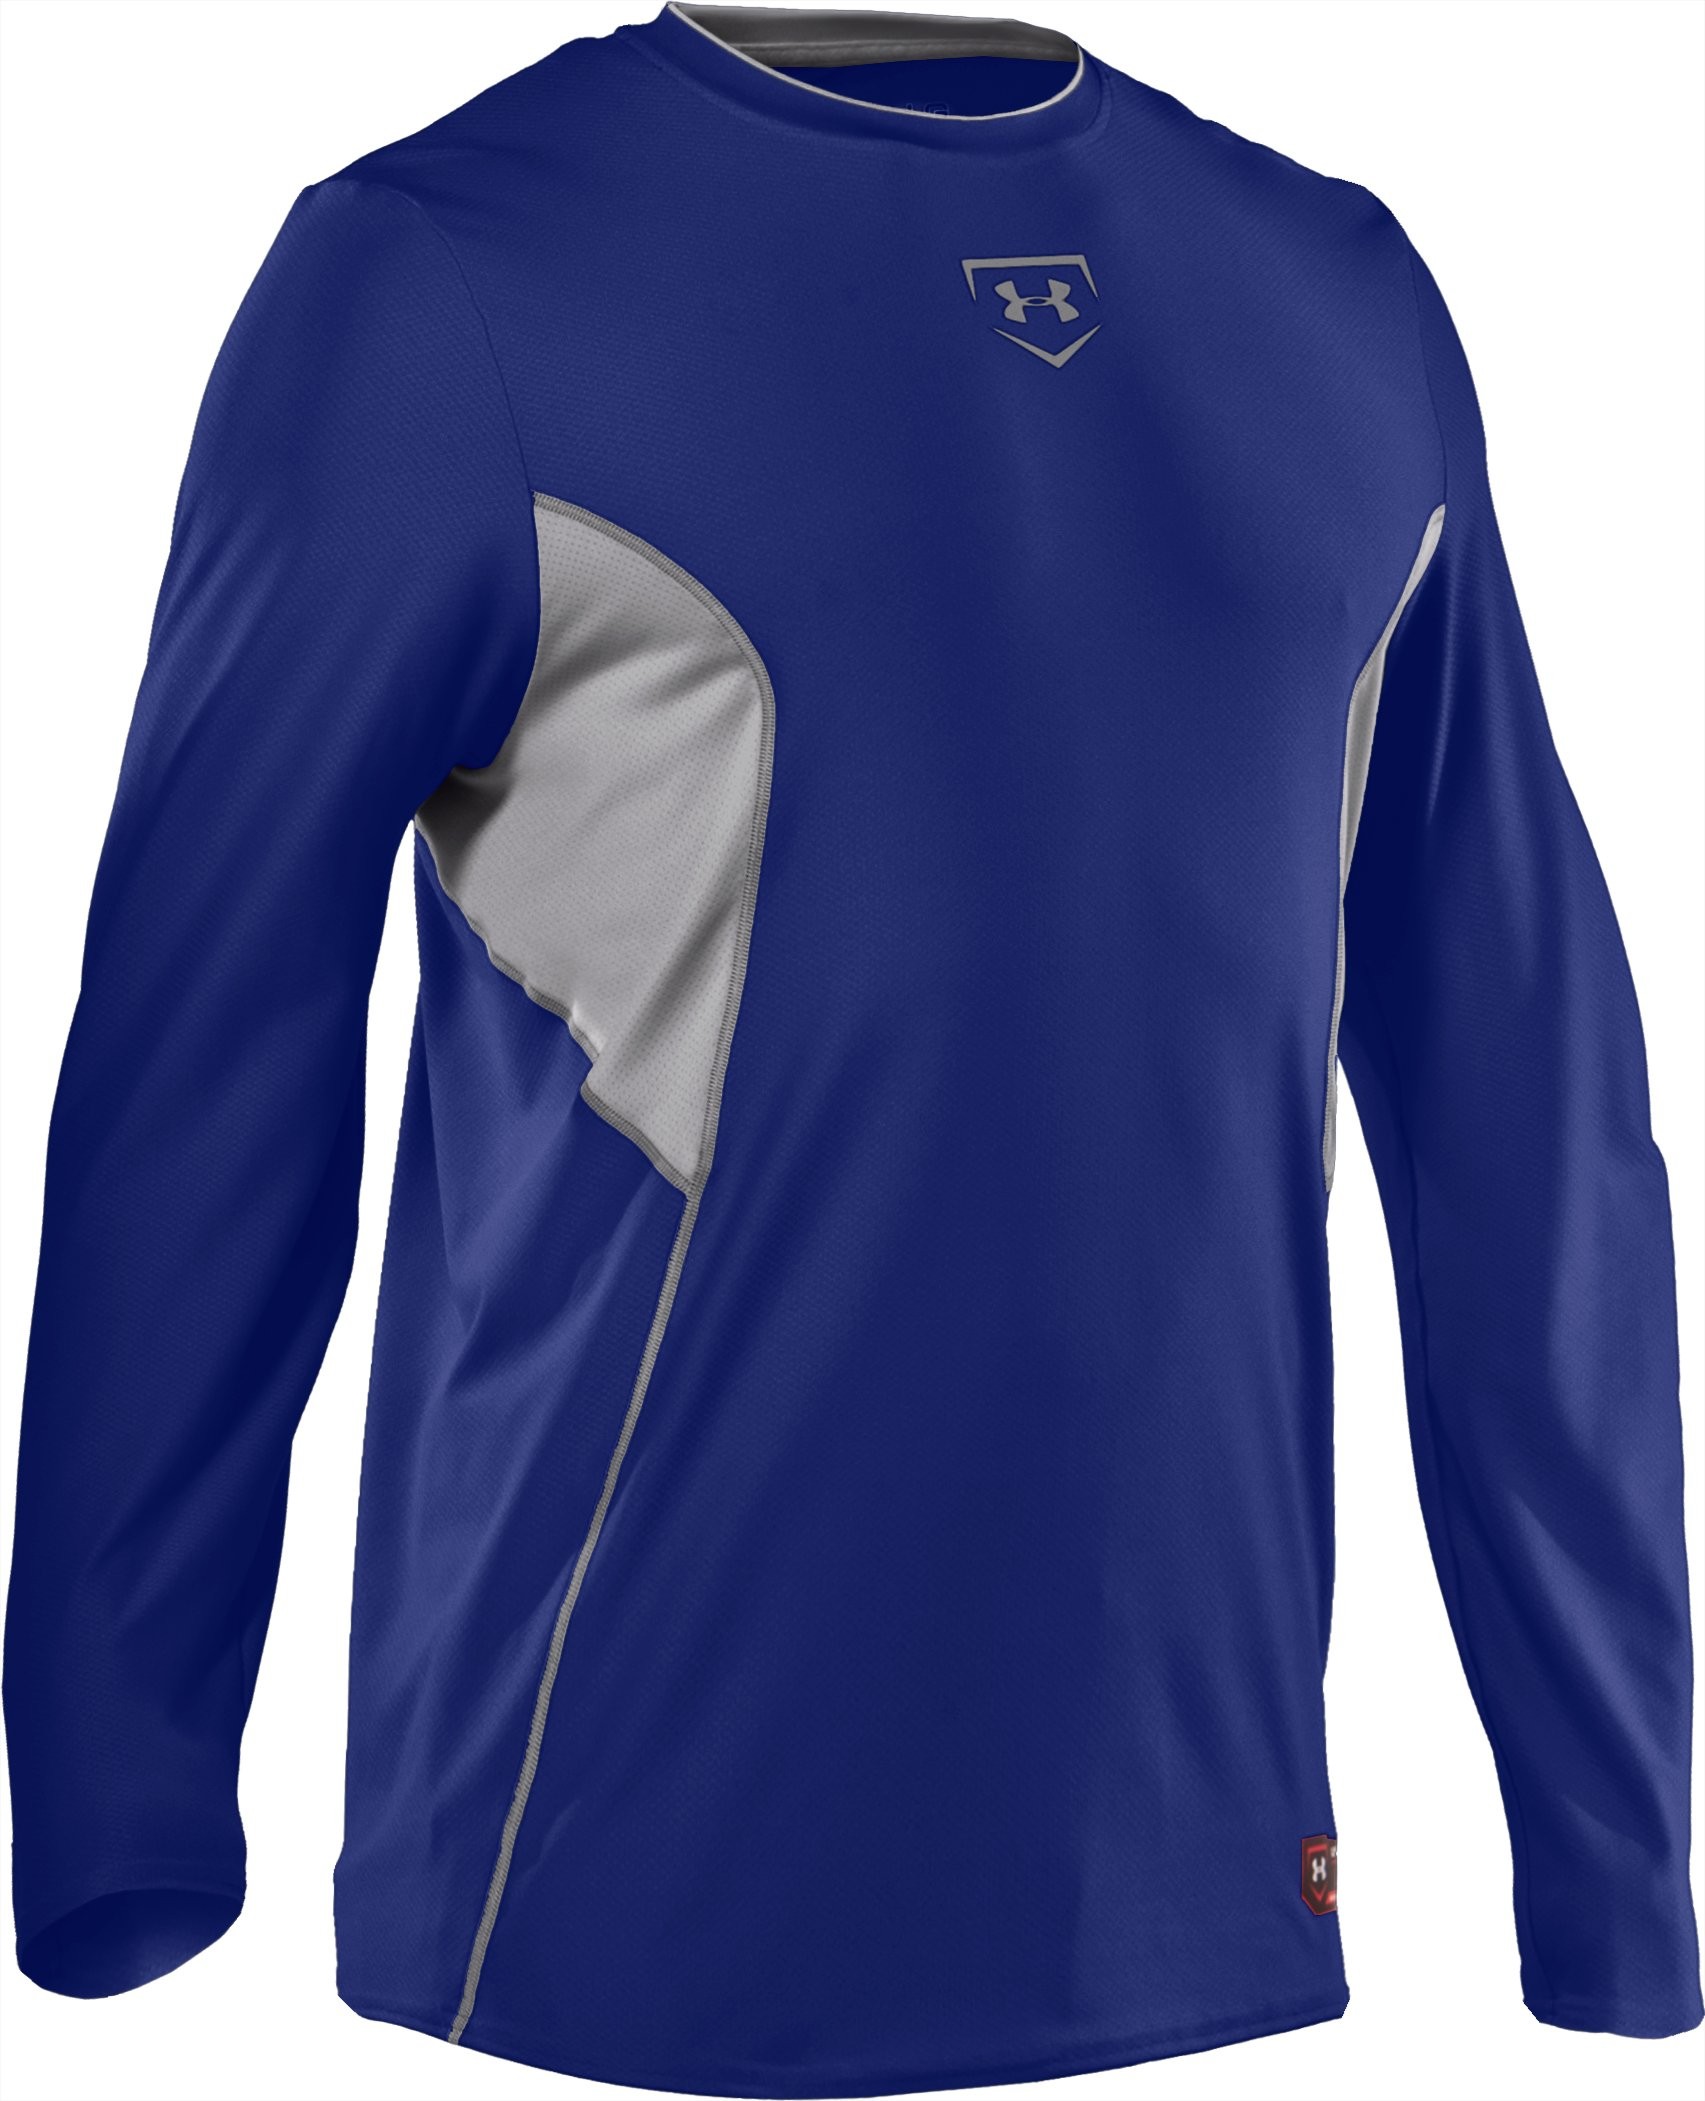 Men's Baseball Gameday Long Sleeve Shirt, Royal